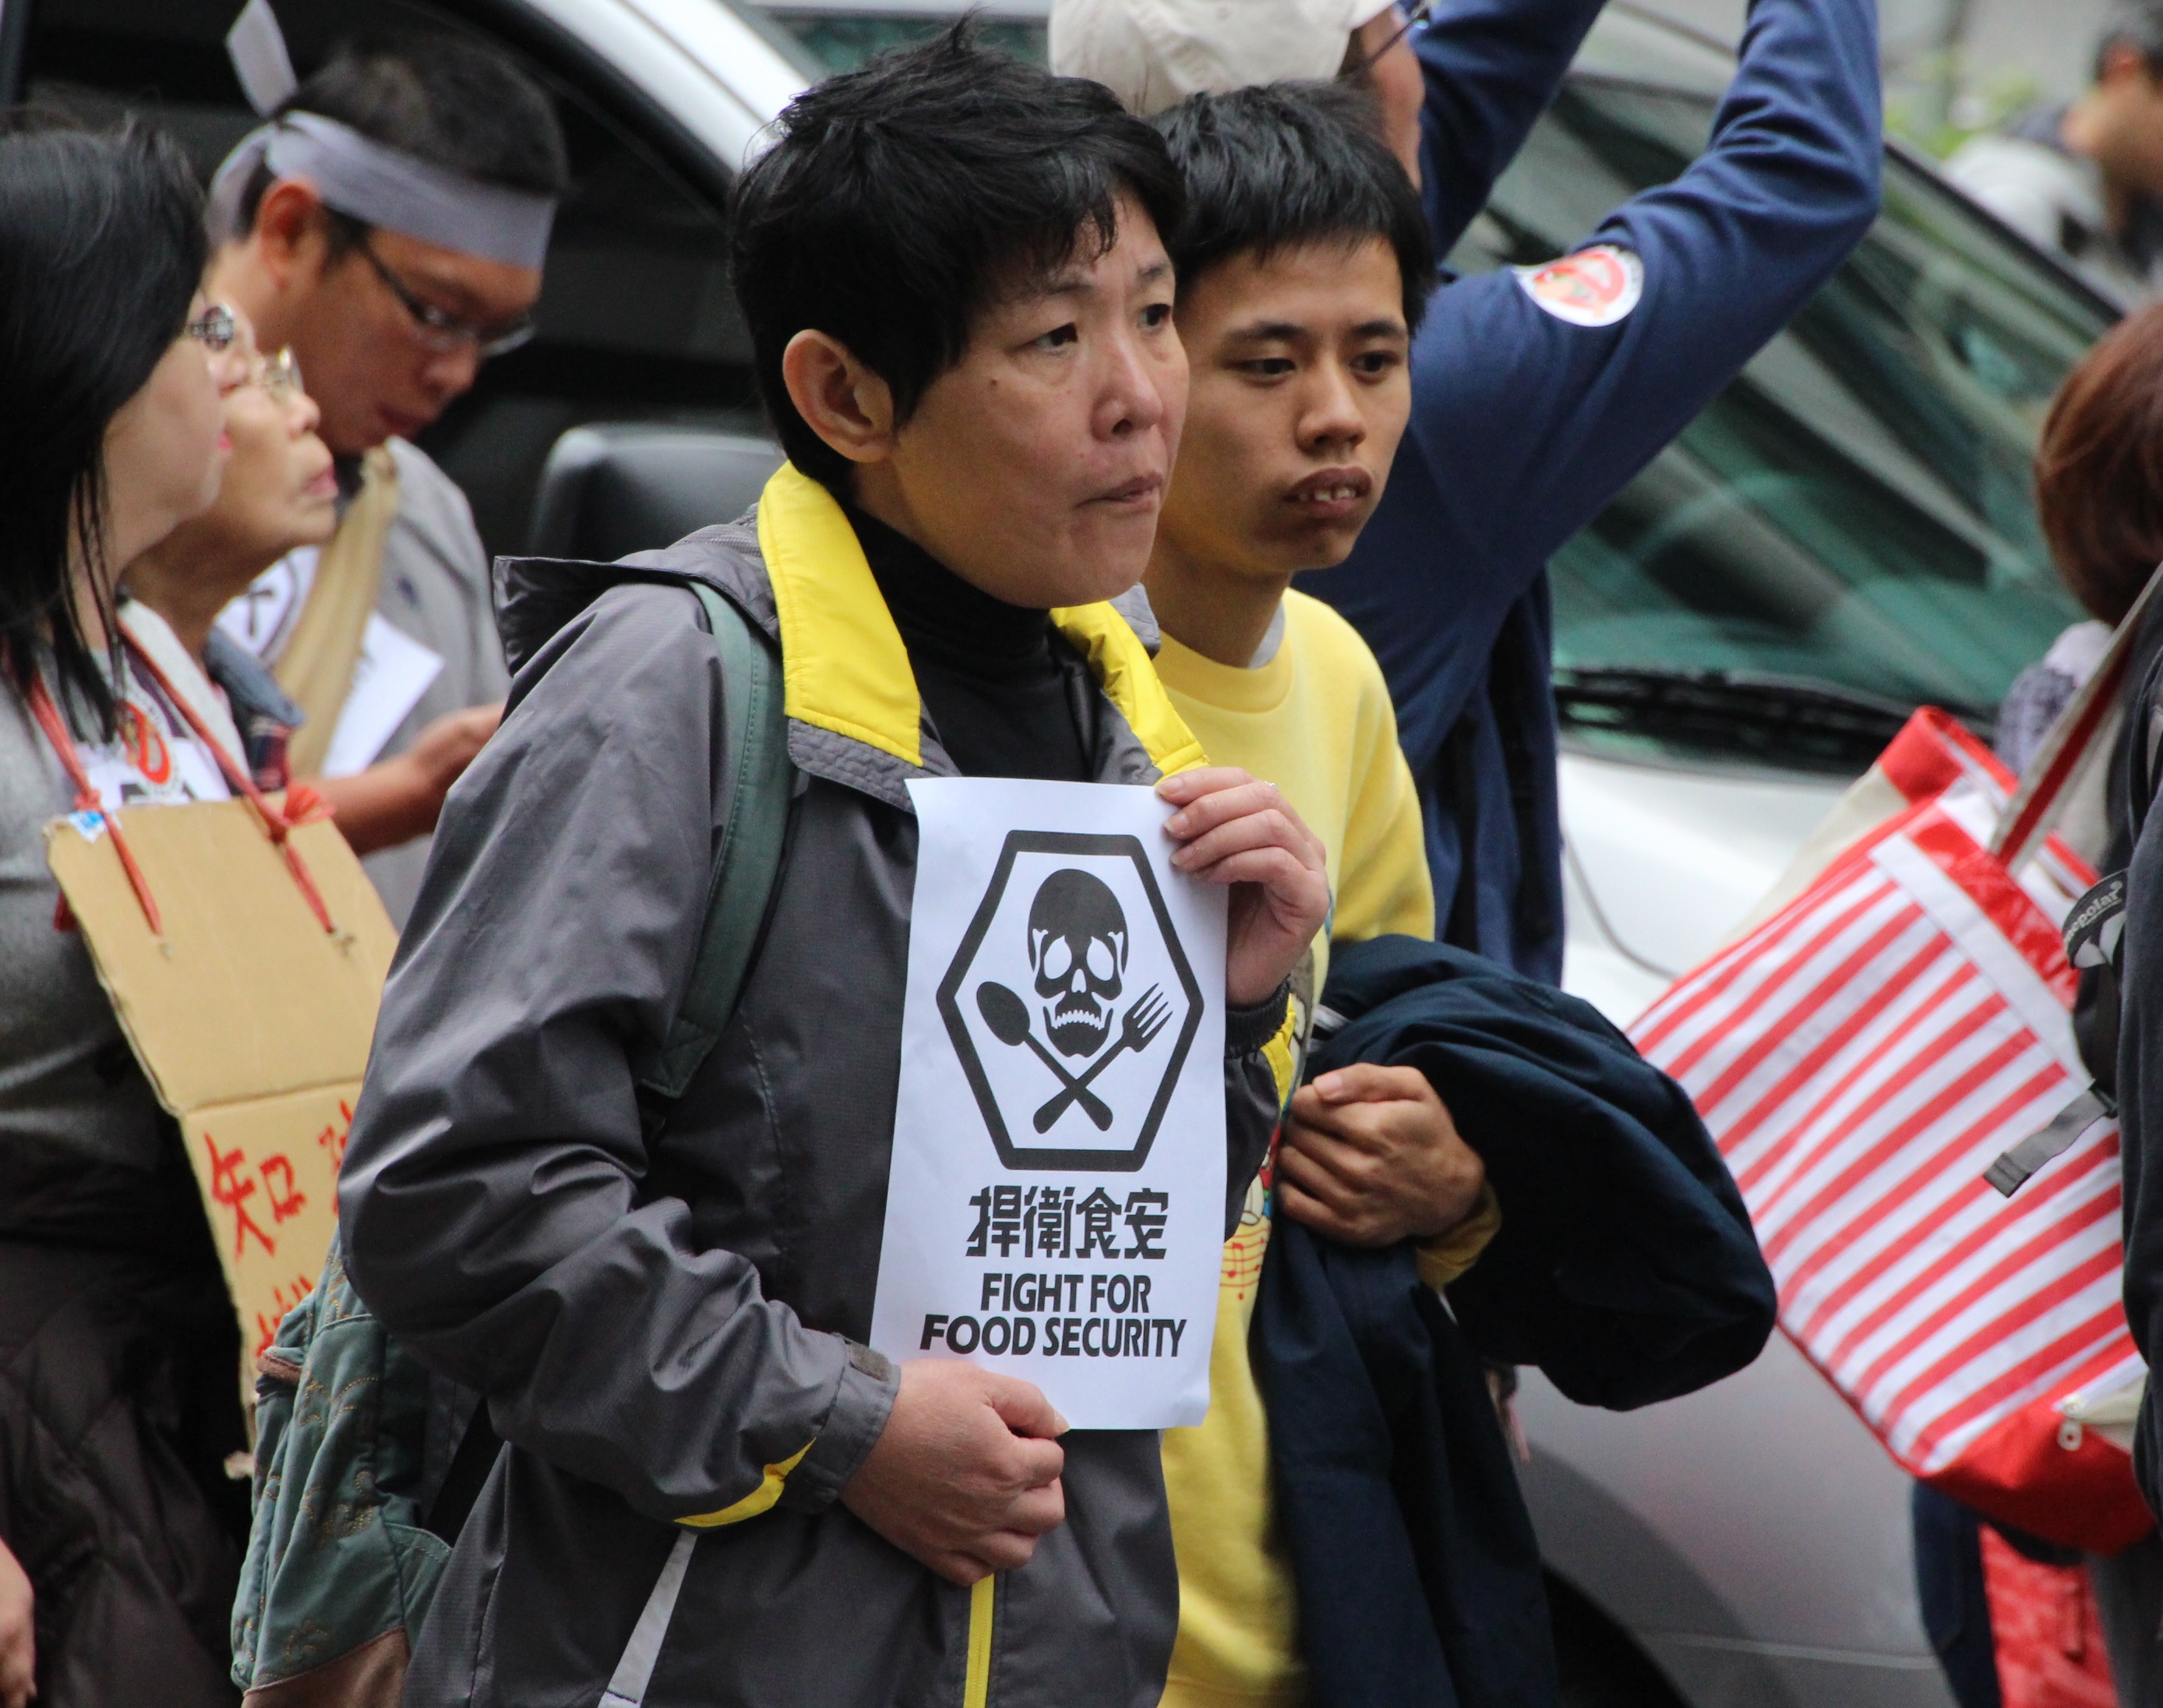 Grayshirts protest for food safety